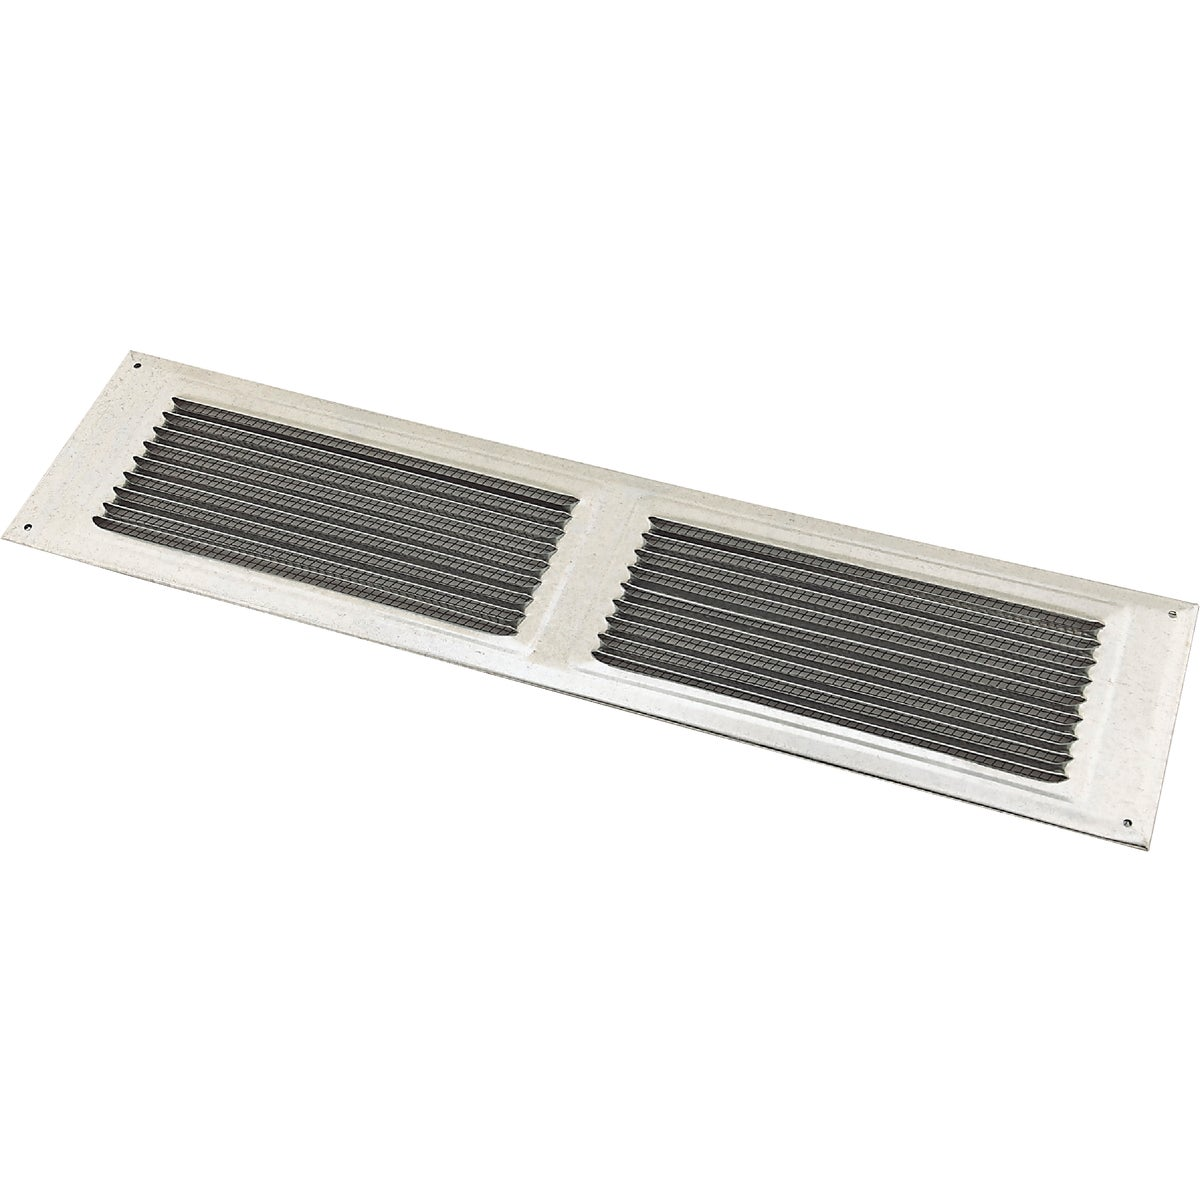 16X4 GALV SOFFIT VENT - 558005 by Noll/norwesco Llc